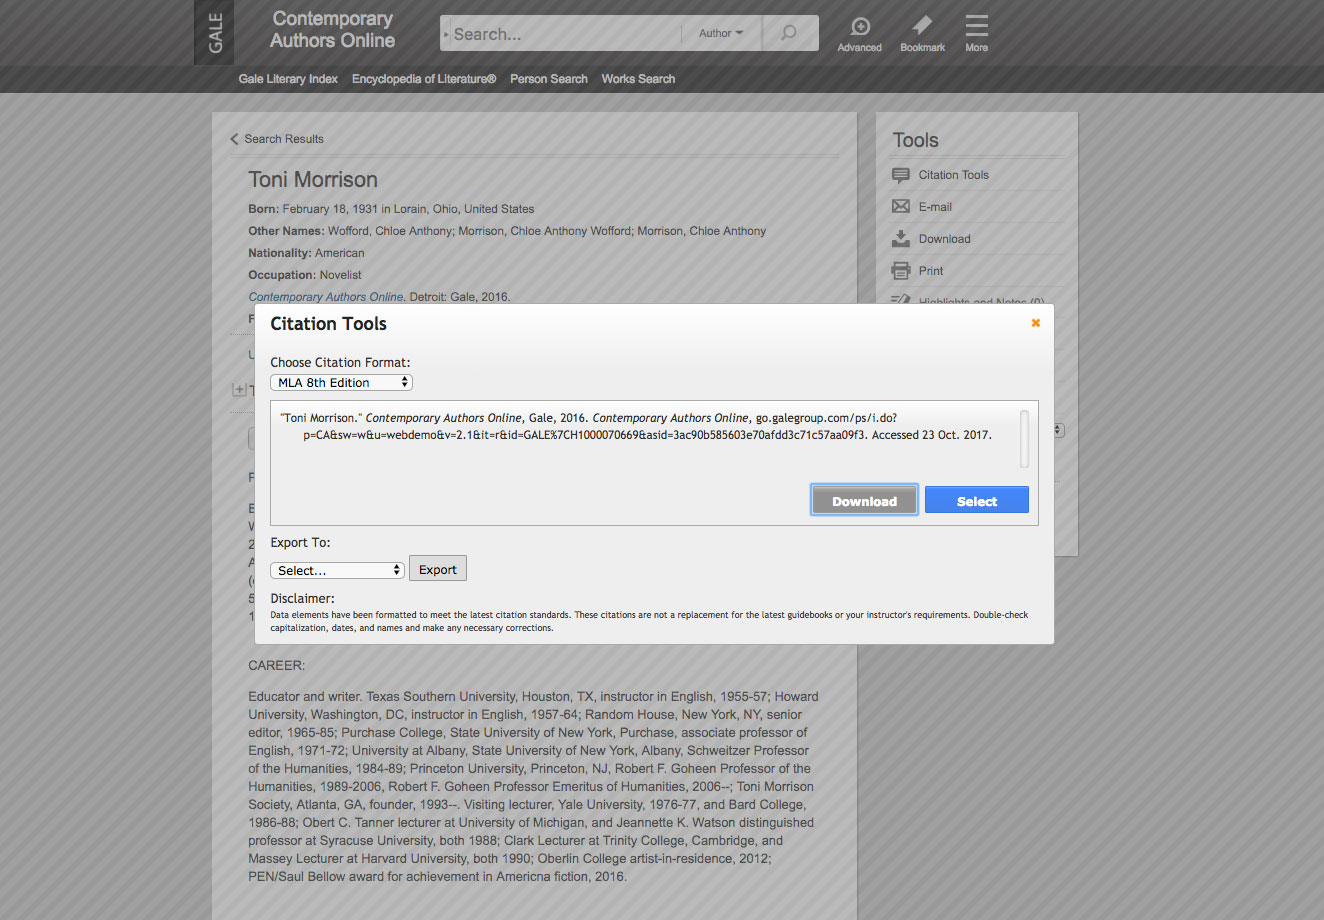 Citation tools screenshot.